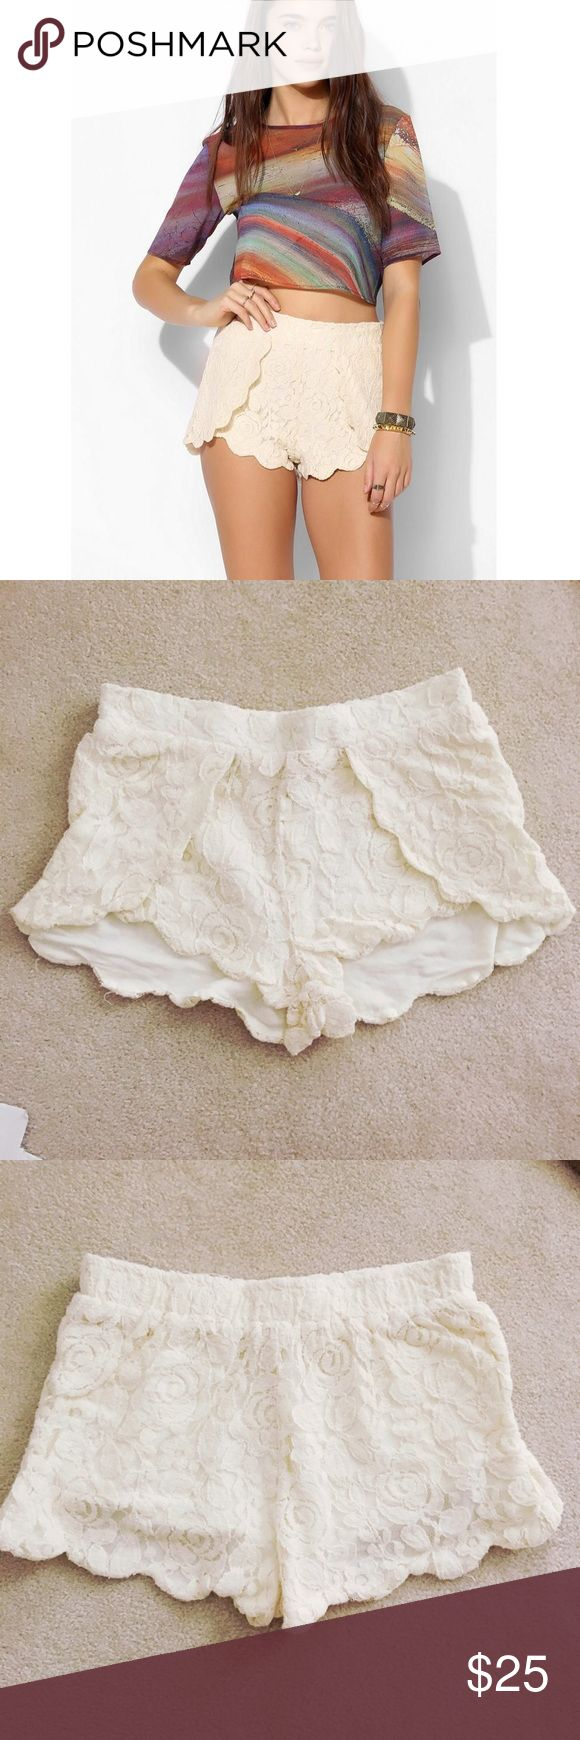 """Urban Outfitters Lace Shorts Cream lace shorts with scalloped detail along angles legs and overlaid front. Gathered elastic pull-on waistband. Front- 10""""L. Back - 12""""L. Waist- 13"""" across. Urban Outfitters Shorts"""